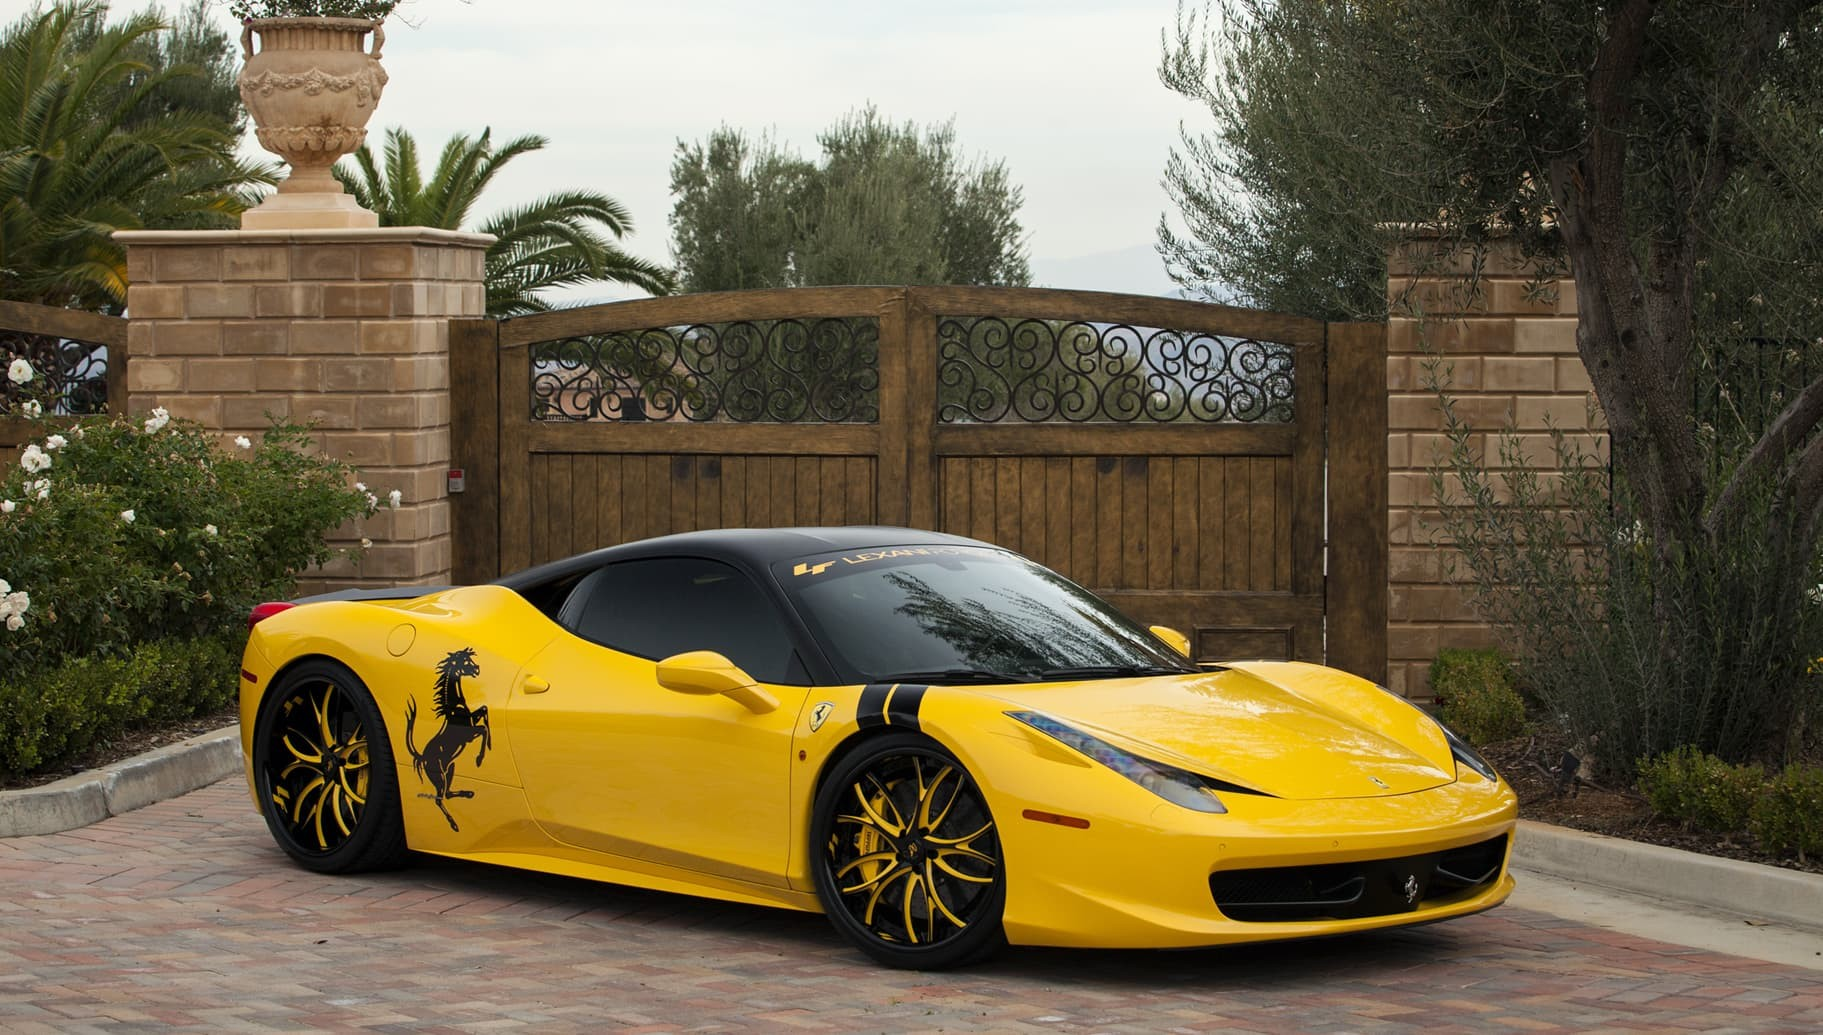 Custom LF-113 on the Ferrari 458.